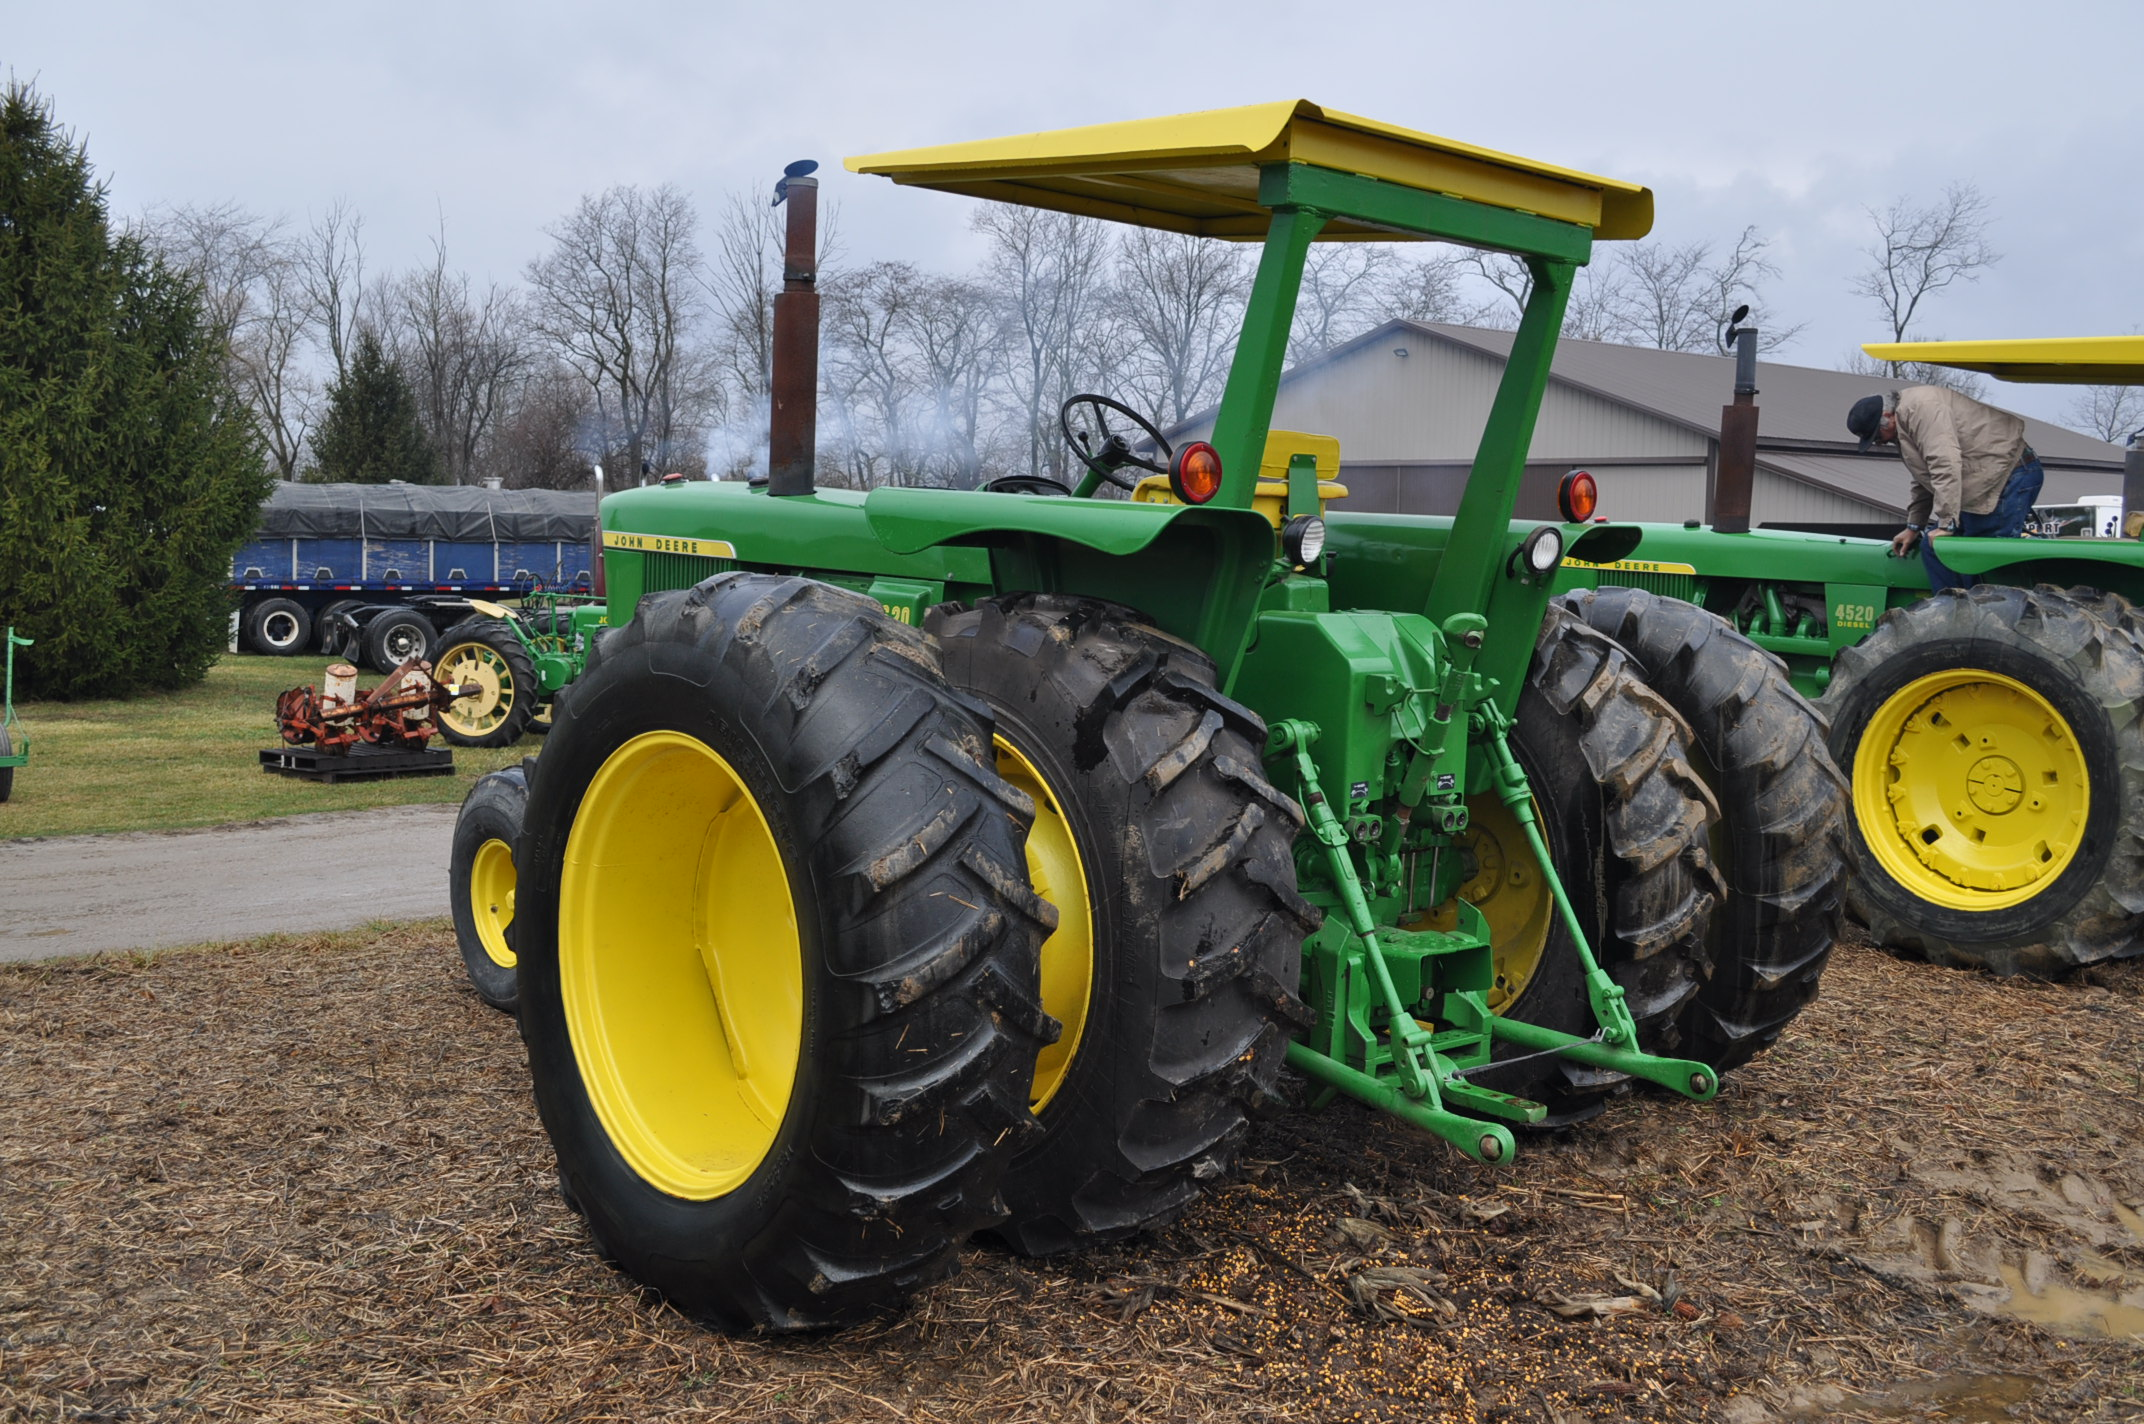 John Deere 4520 tractor, ***4520 frame with 4620 engine**** diesel, 18.4-38 new inside rear - Image 2 of 17